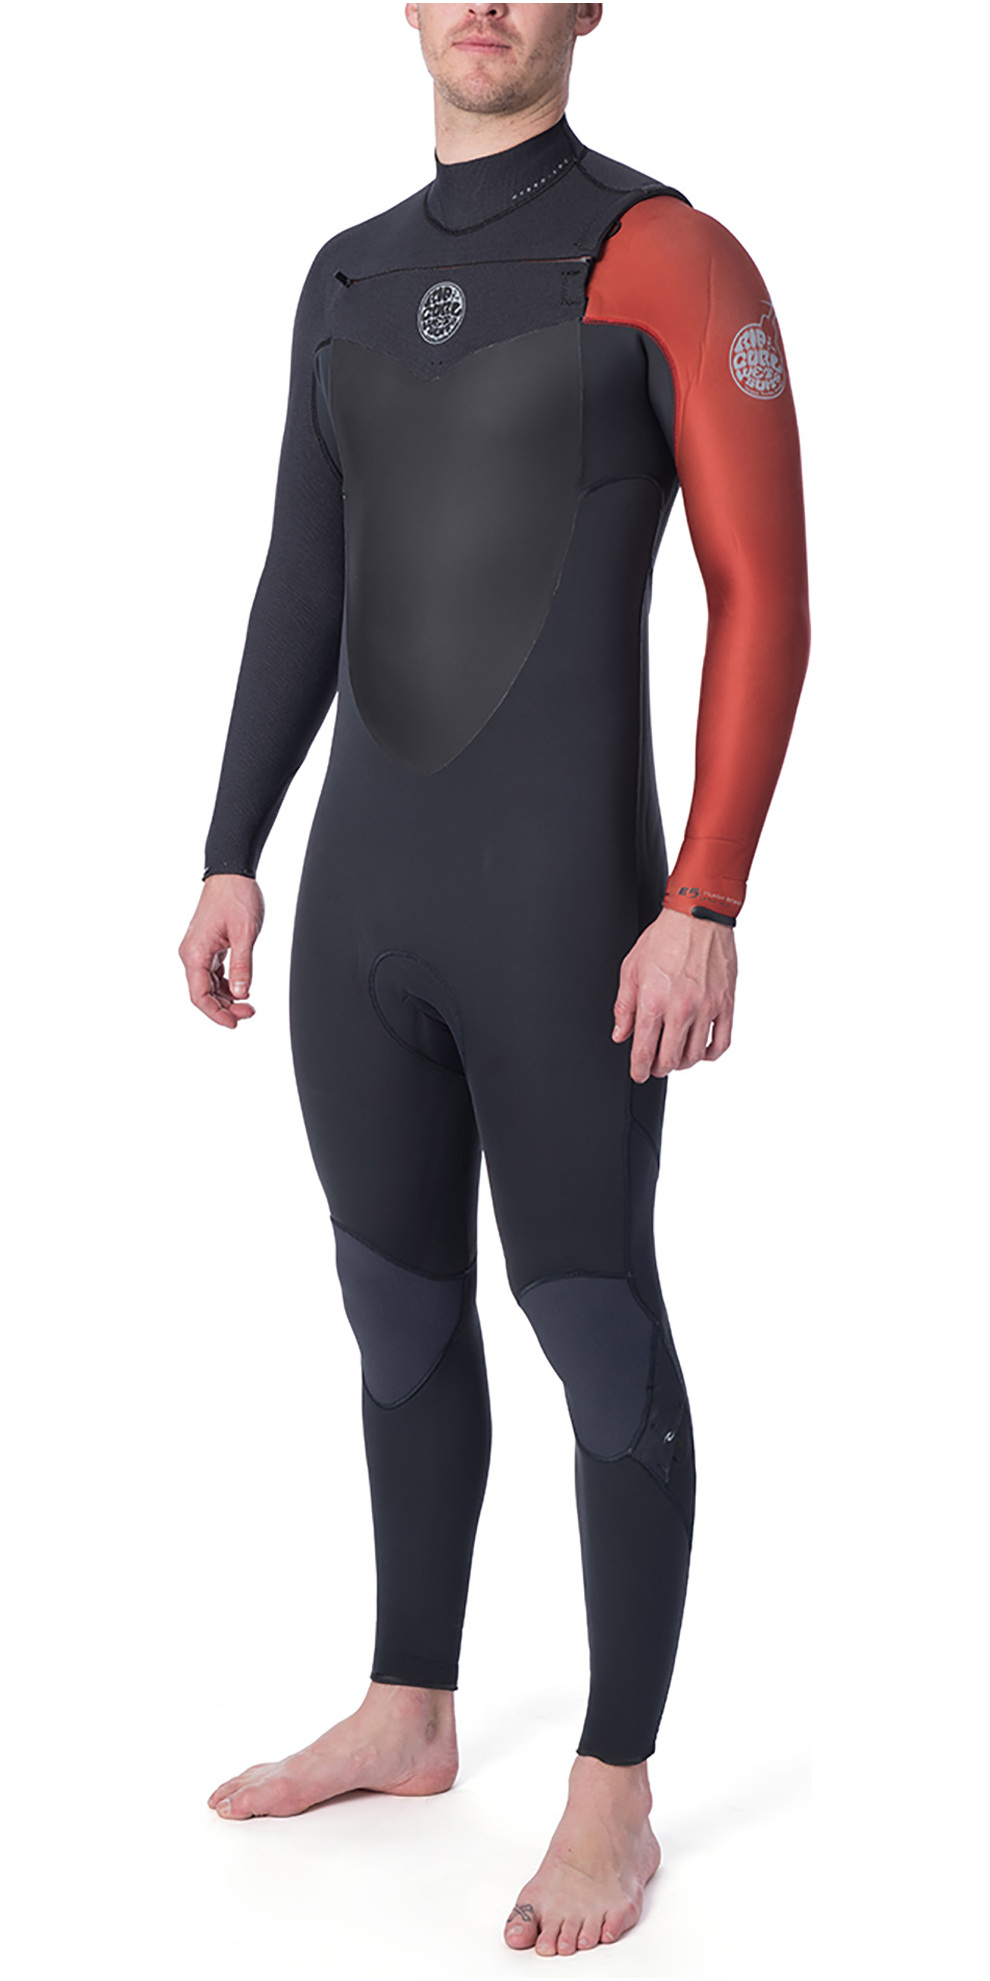 Gul Response FX 3//2MM Gbs Back Zip Wetsuit Black Lime Easy Stretch Thermal Lining Thermal Warm Heat Layer Layers